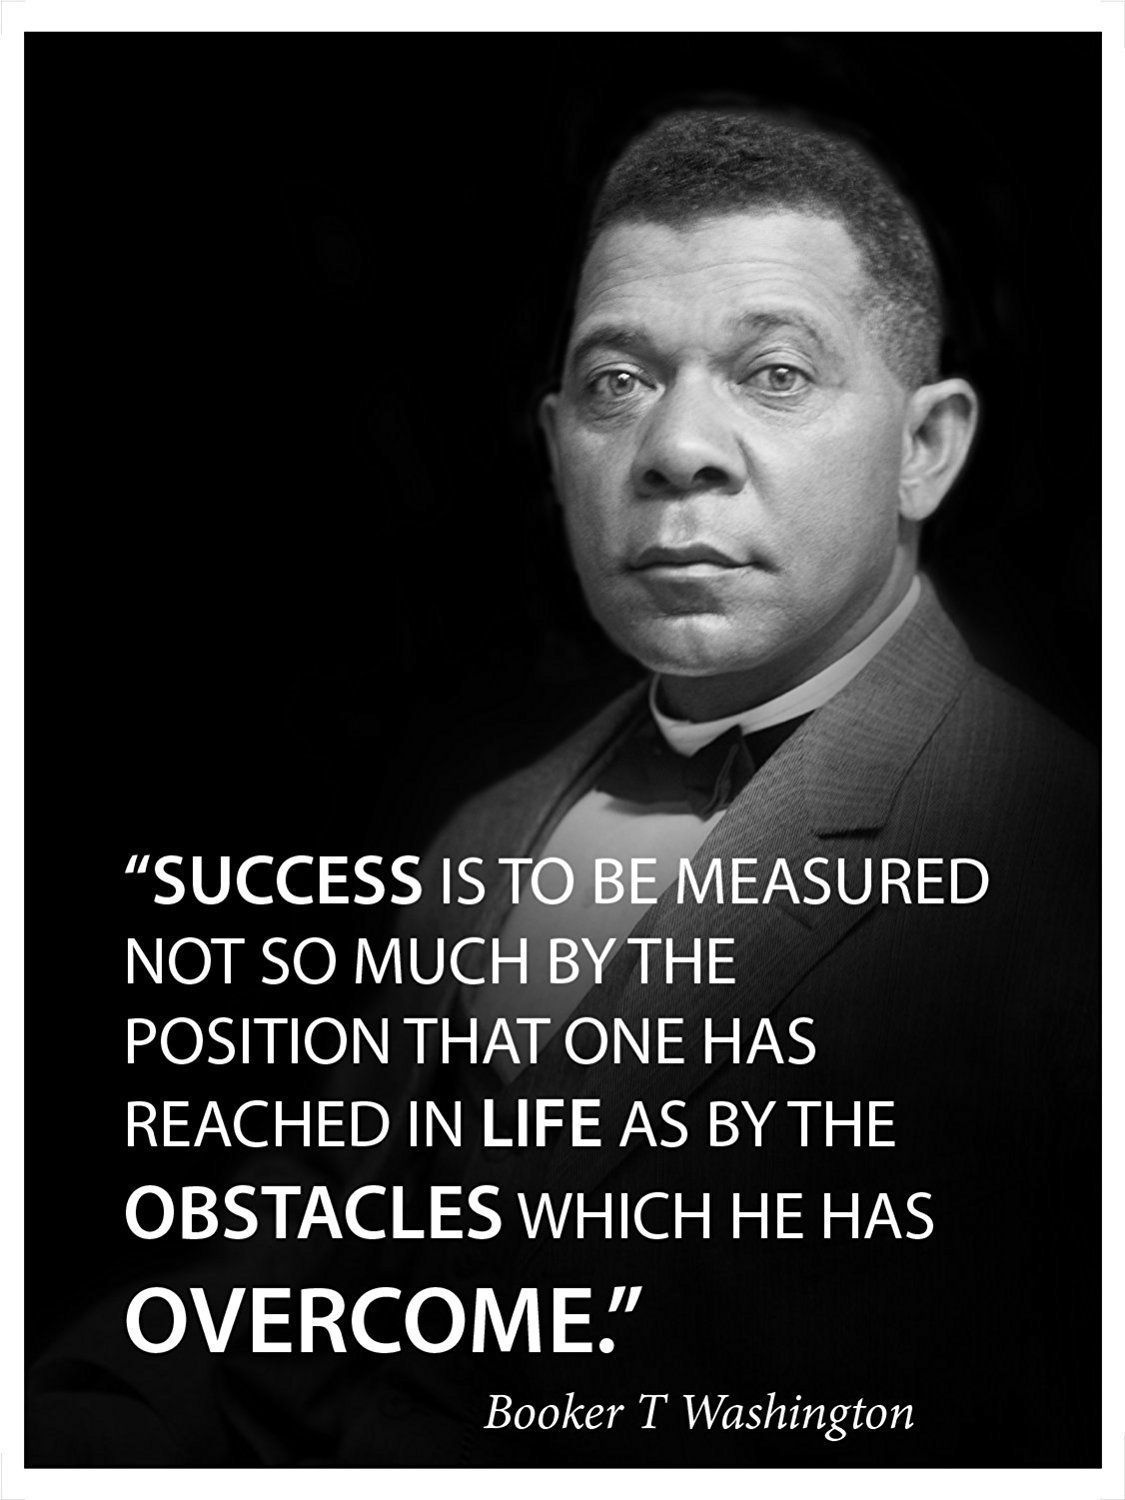 Success is to be measured famous quote poster portrait by